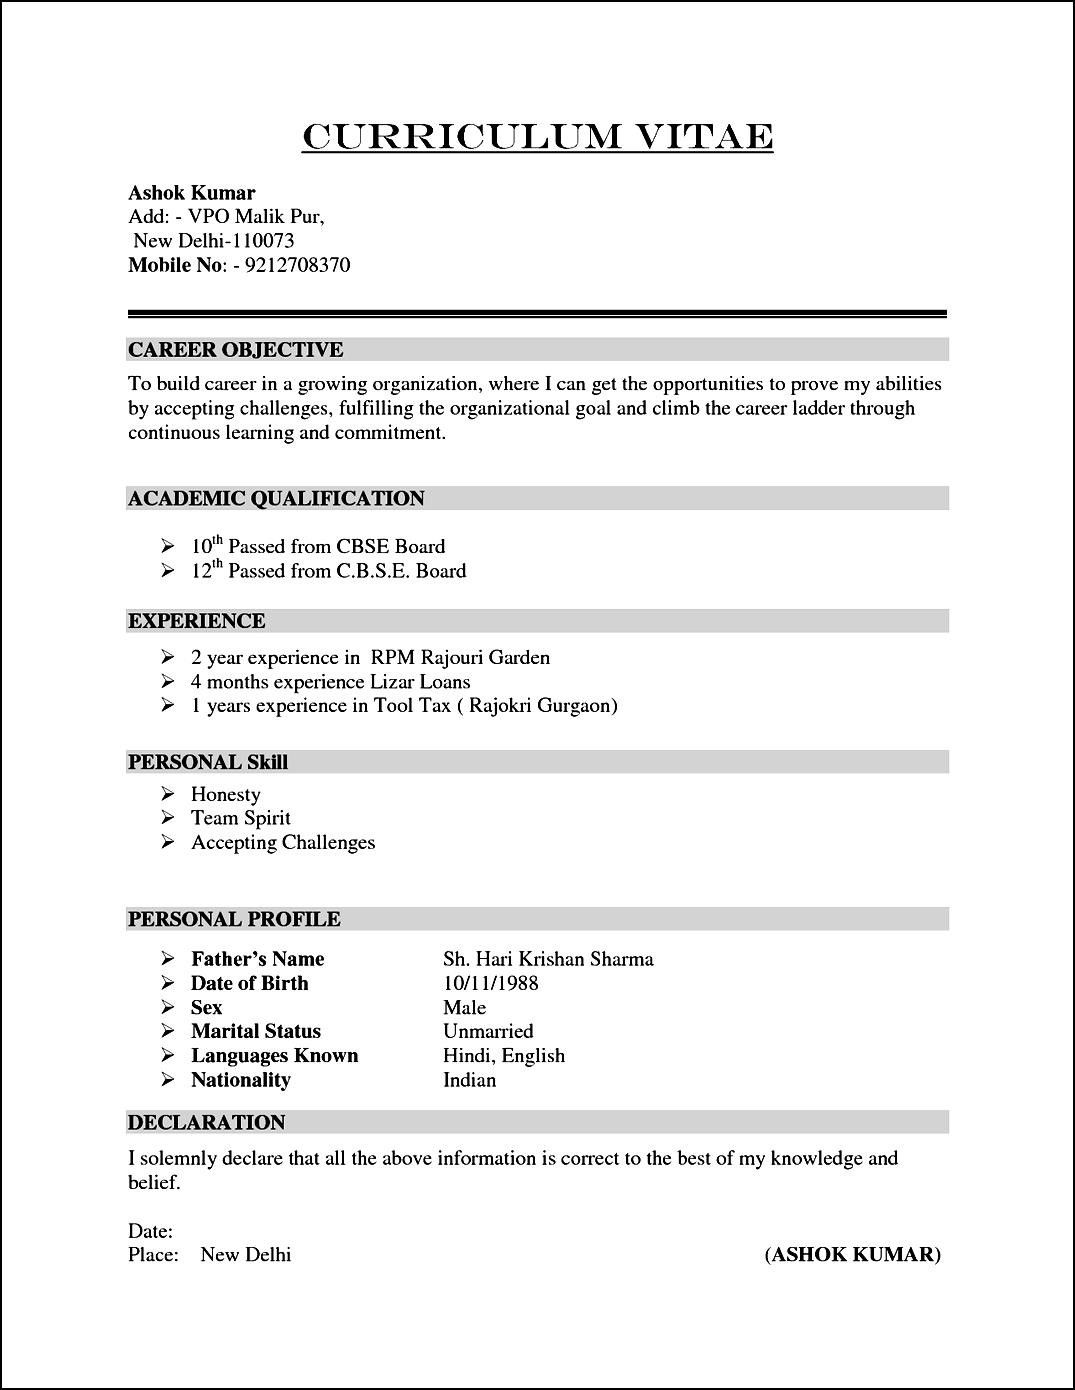 Template For Curriculum Vitae Samplecurriculumvitaeresumeforcareerobjectivewithacademic